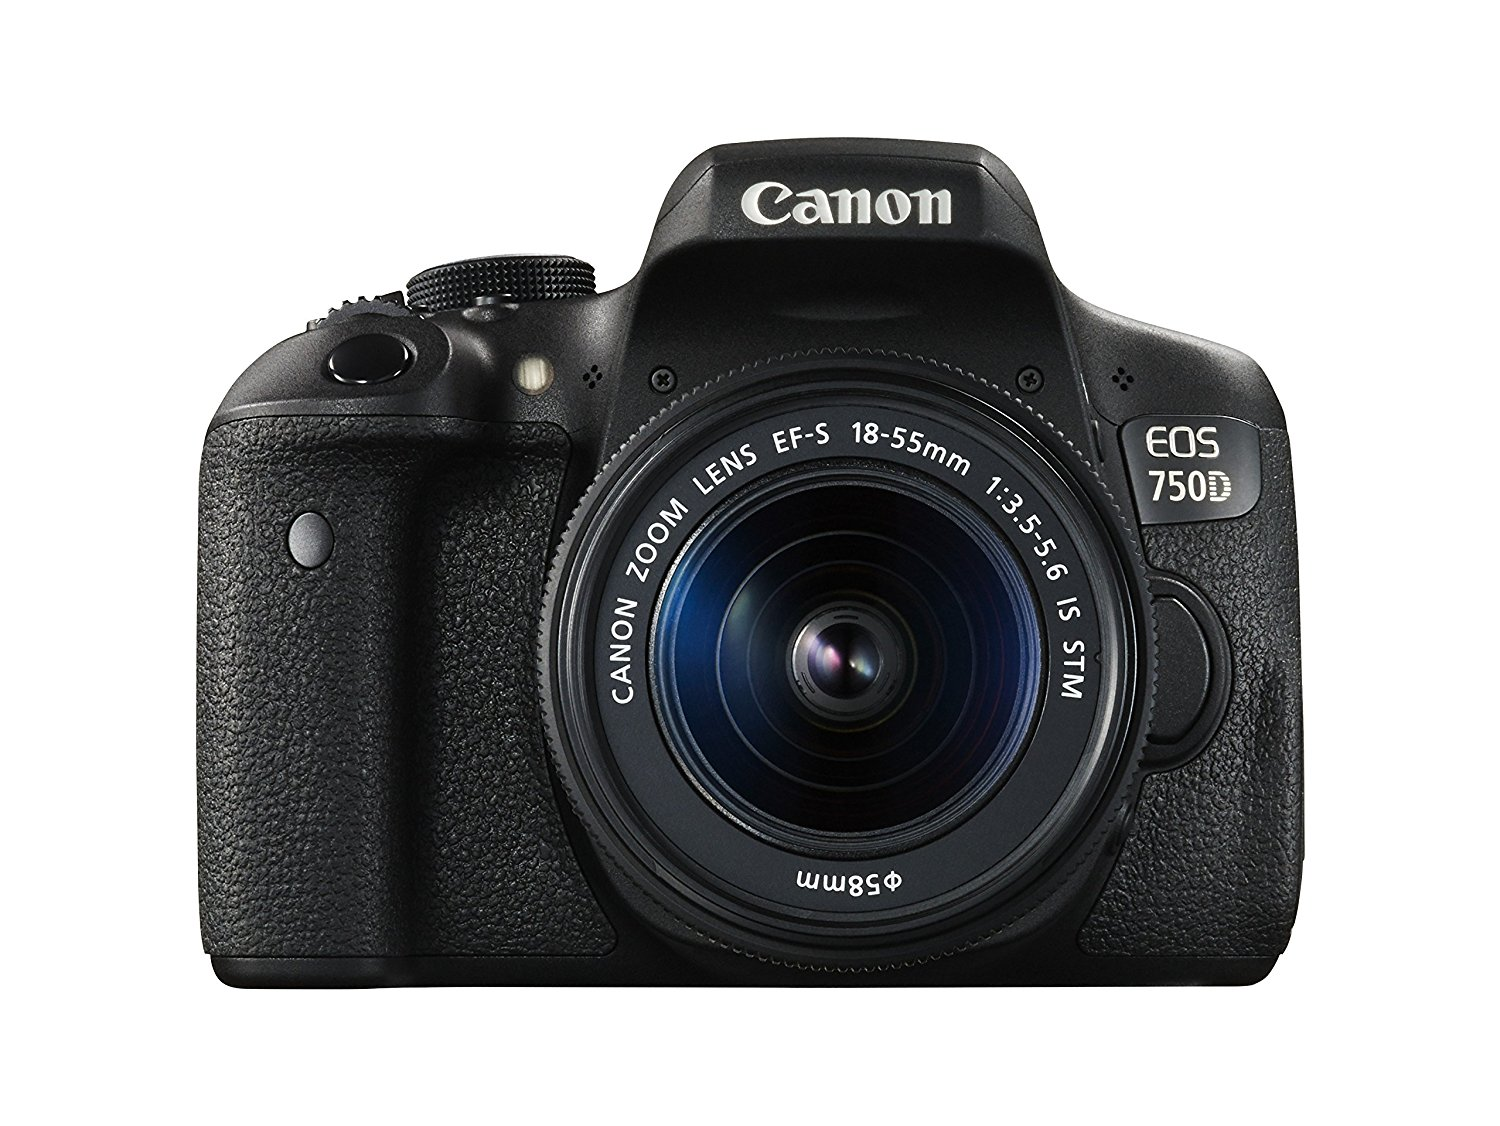 One of the best entry level DSLR's,the Canon 750D!